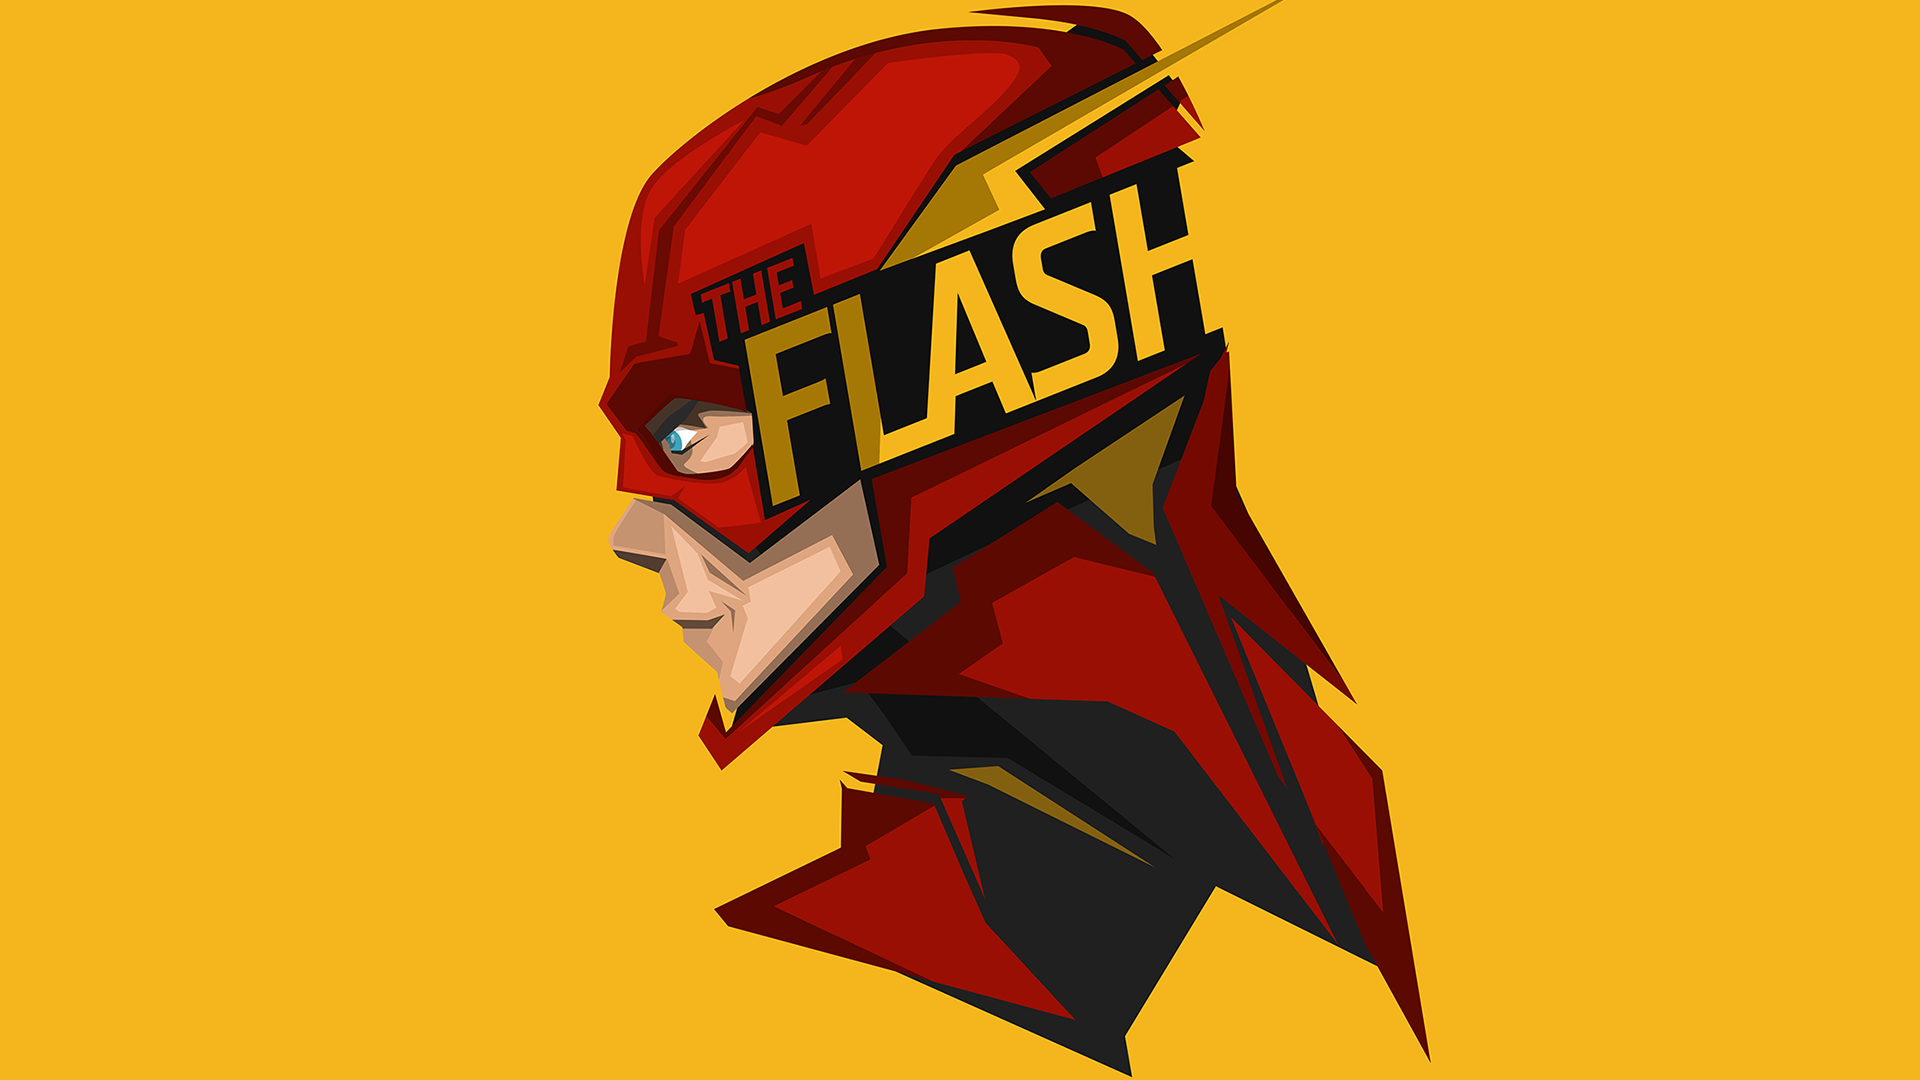 213 flash hd wallpapers | background images - wallpaper abyss